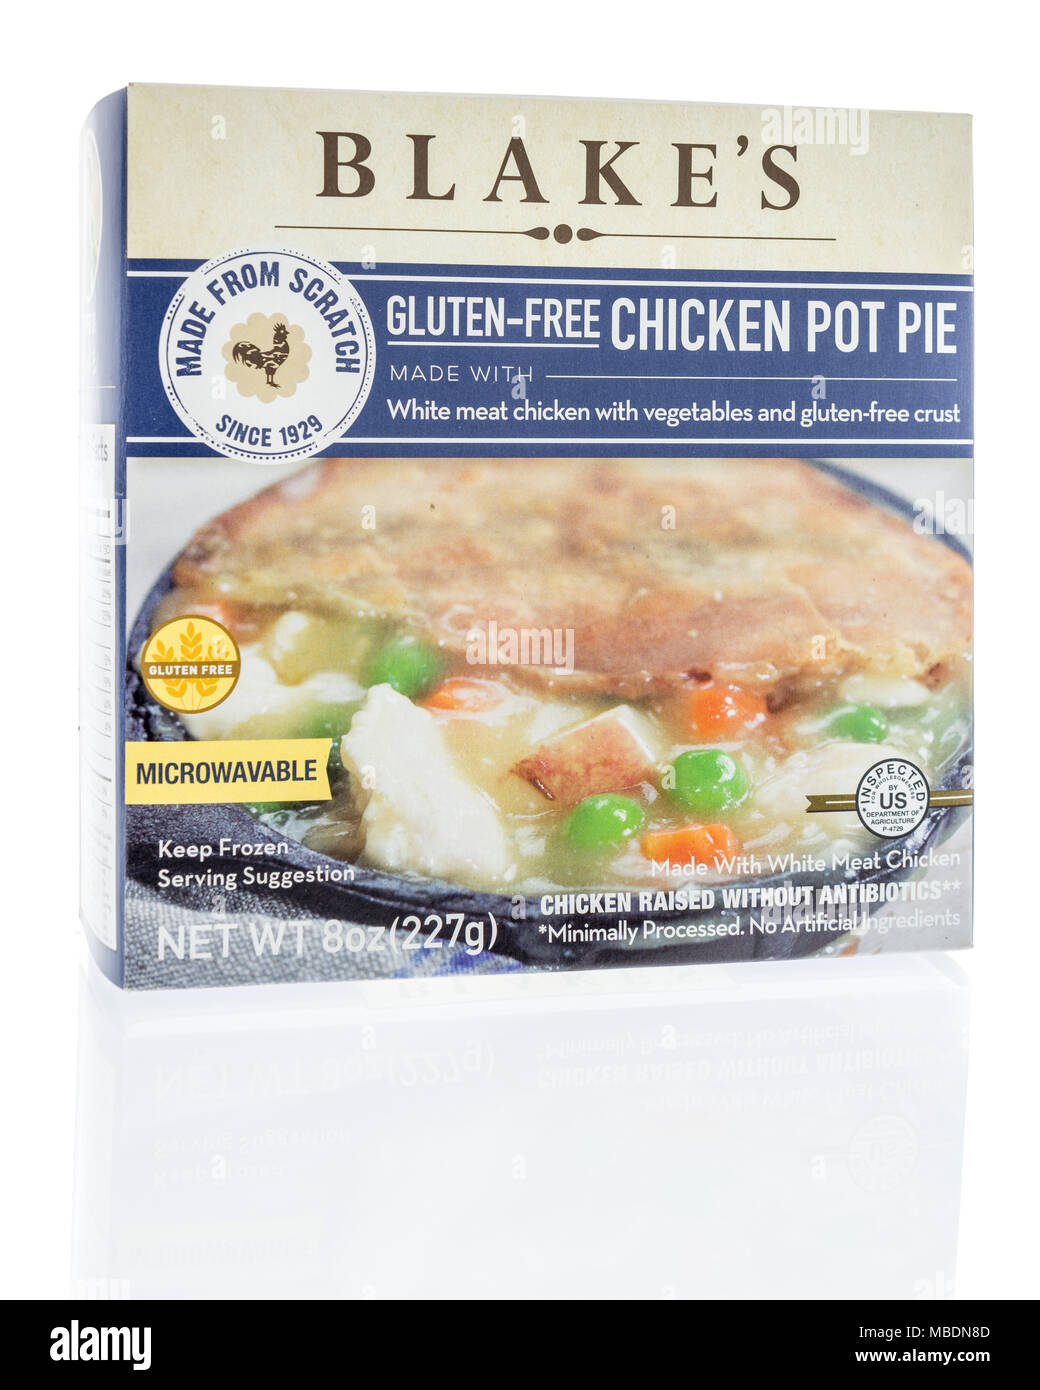 Winneconne, WI -  7 April 2018: A box of Blakes gluten-free chicken pot pie on an isolated background. - Stock Image